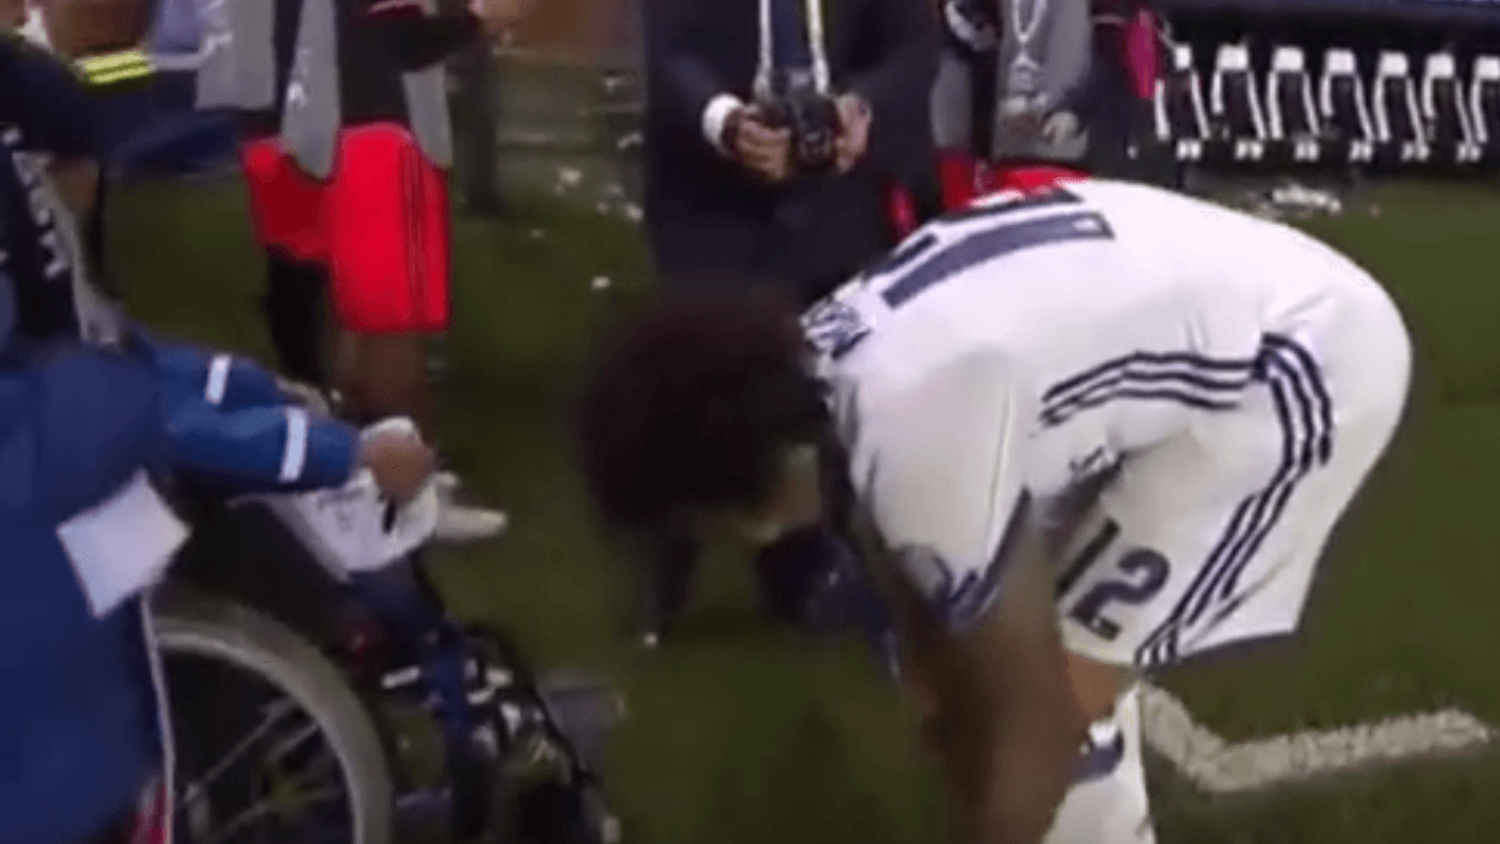 Real Madrid's Marcelo gives away boots to young fan after Super Cup victory